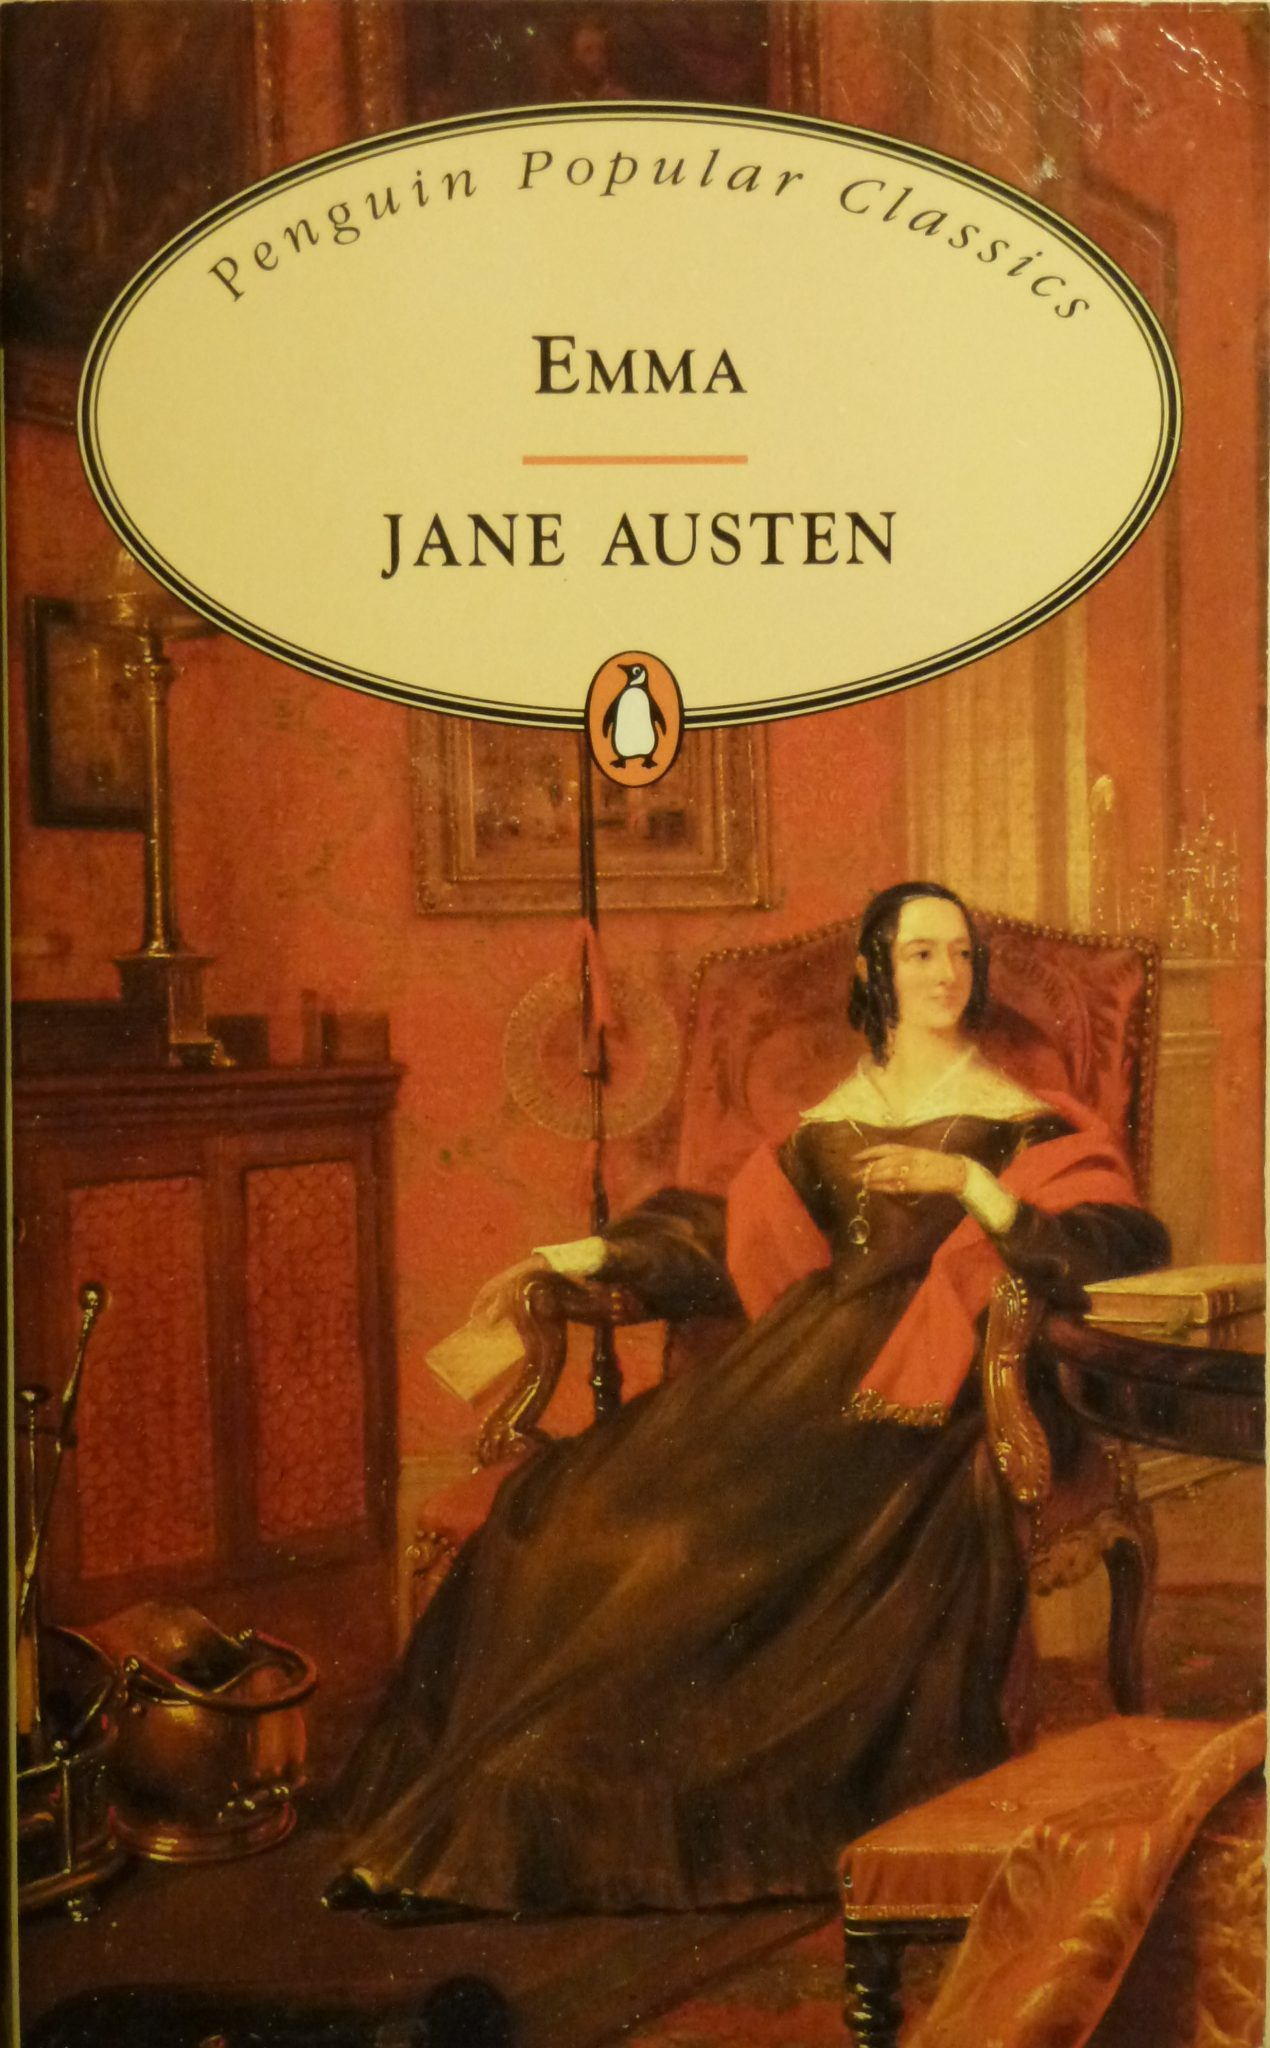 Emma | Jane Austen (Food Reference List)